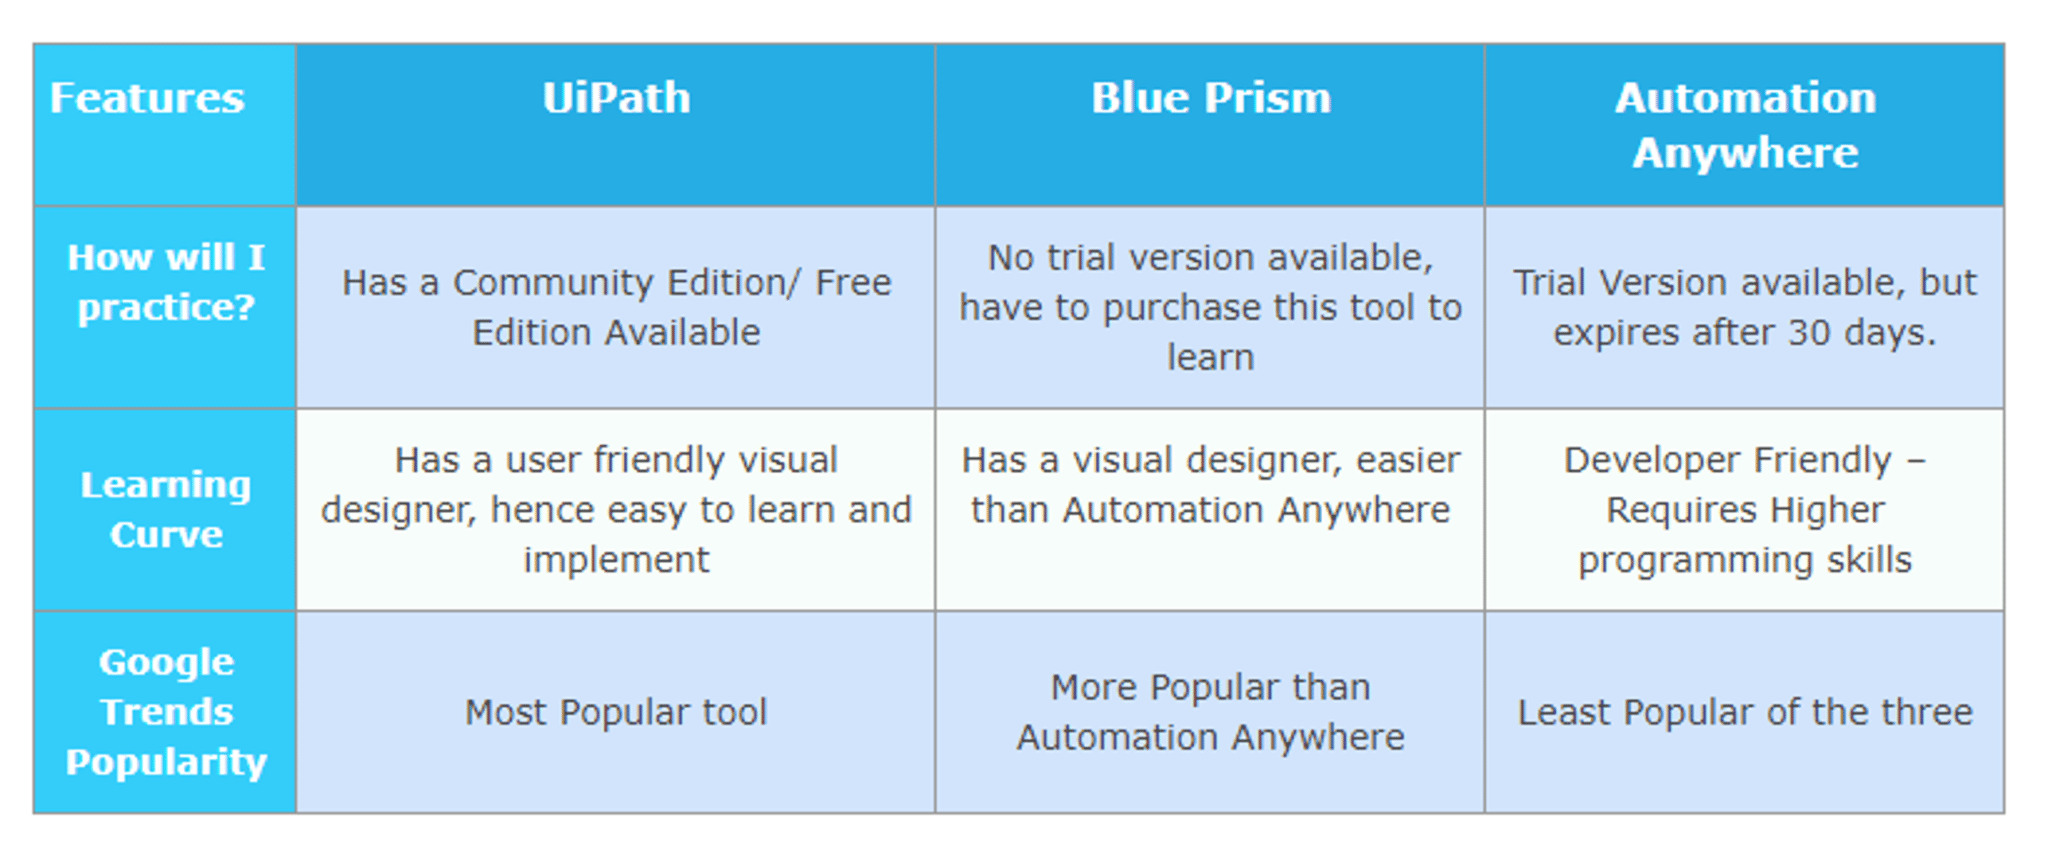 Rpa Uipath Interview Questions And Answers For 2019 Edureka